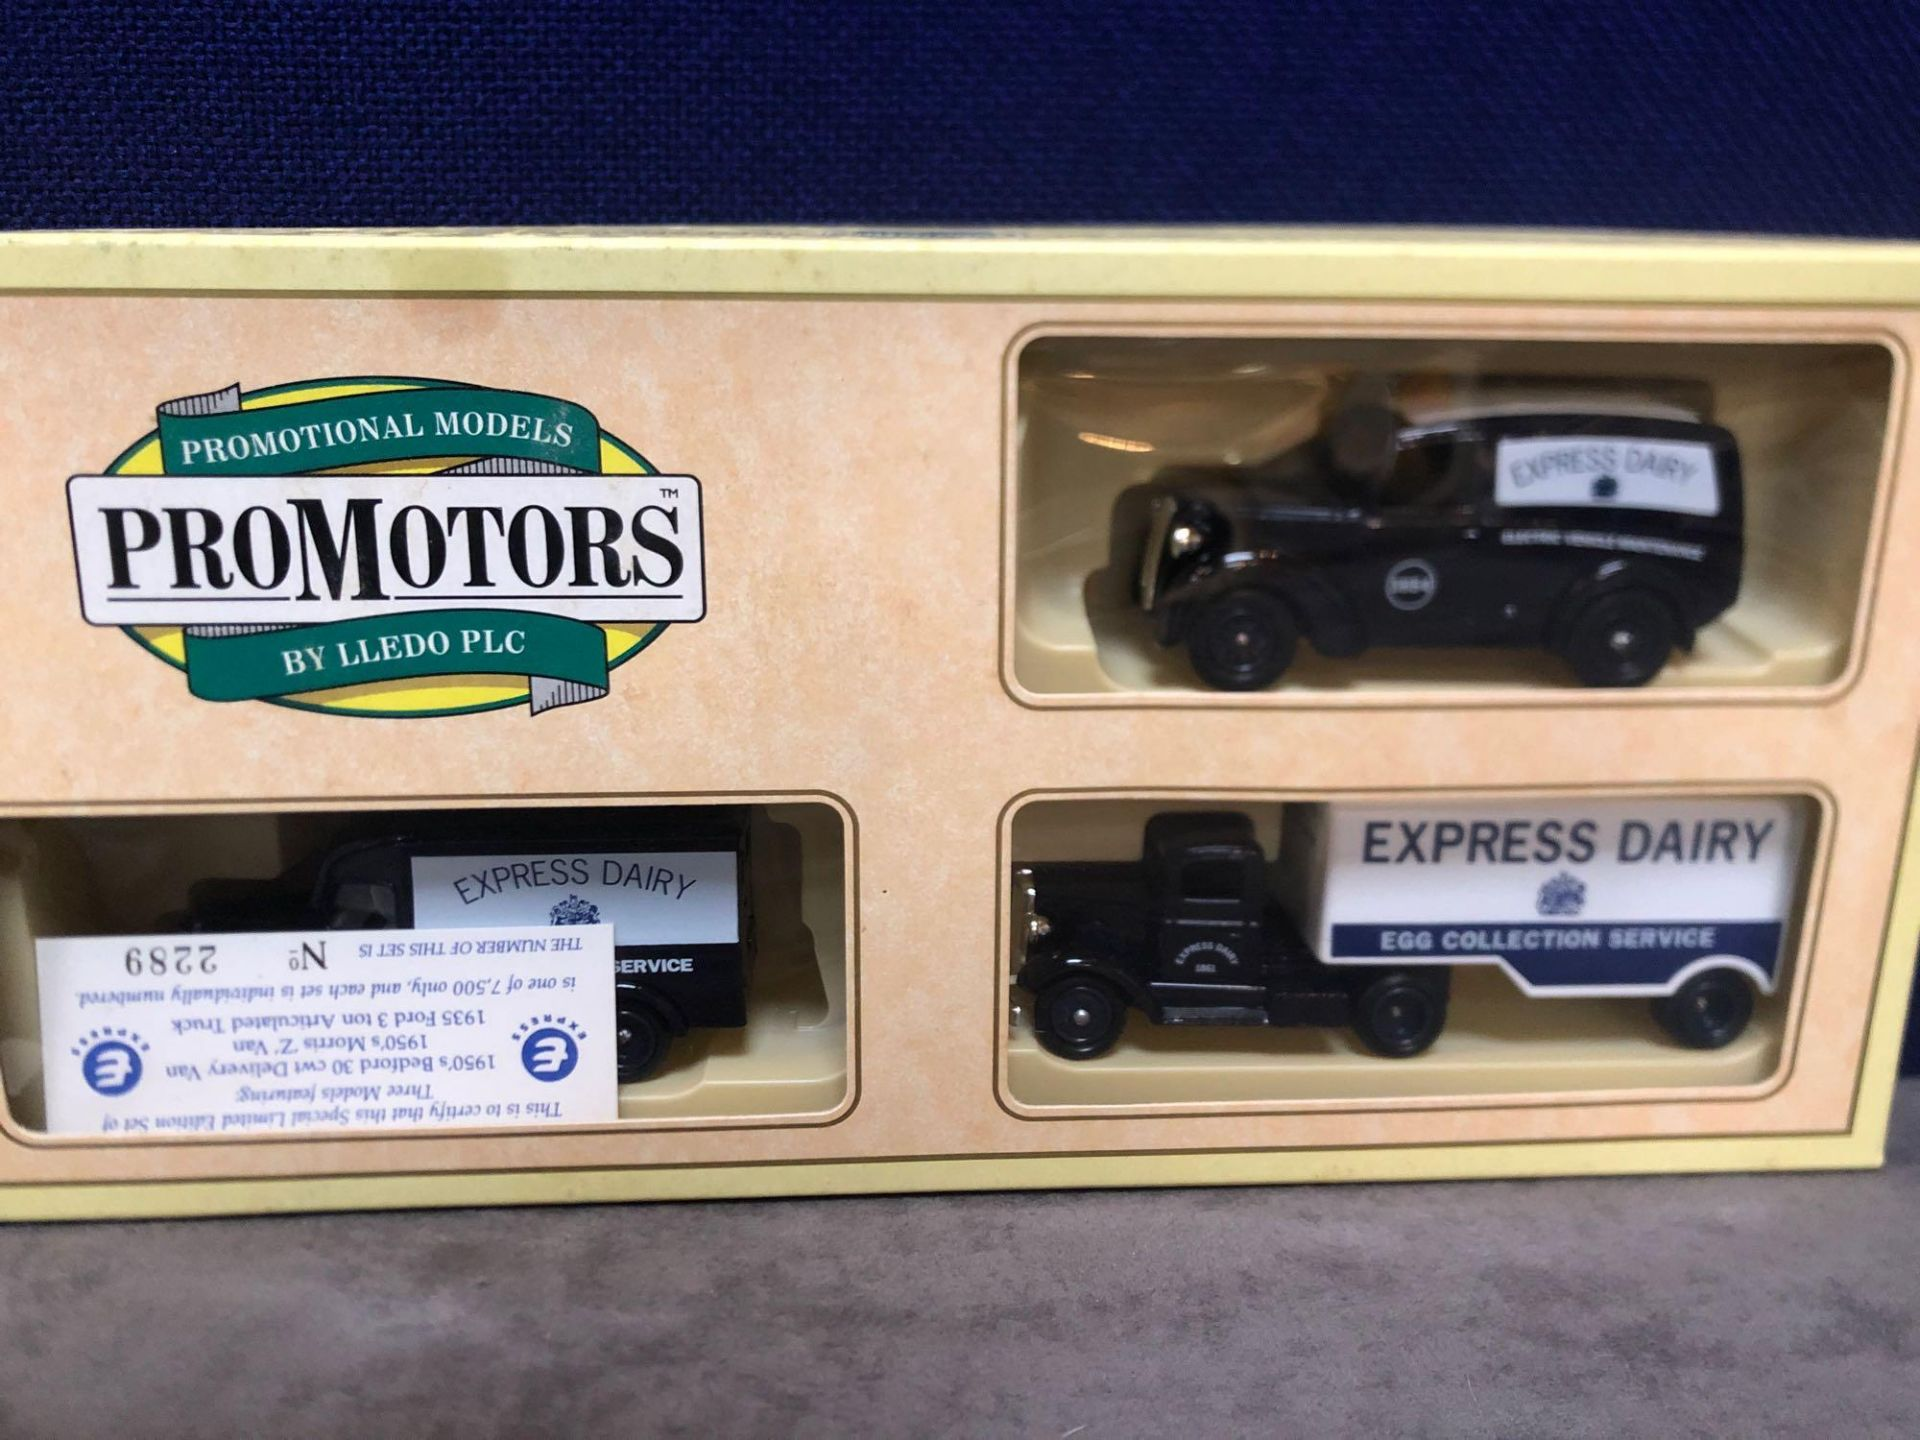 2x Lledo Diecast Express Dairy Sets And 2x Lledo Diecast Express Dairy Vehicles, Each One Boxed. - Image 2 of 3